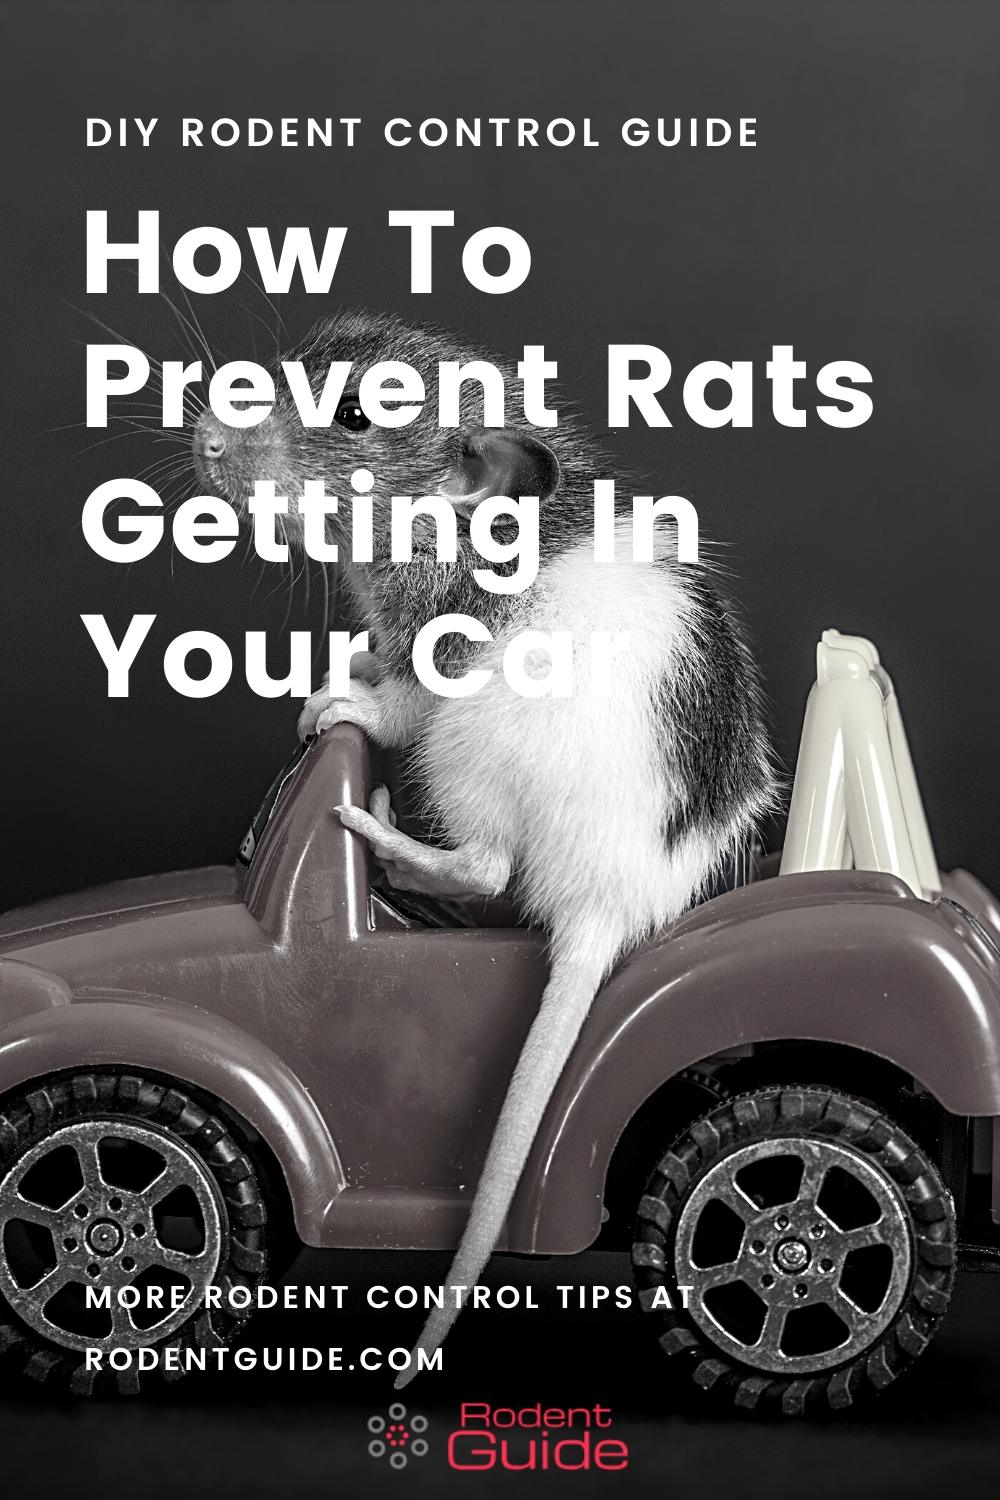 How To Prevent Rats Getting In Your Car